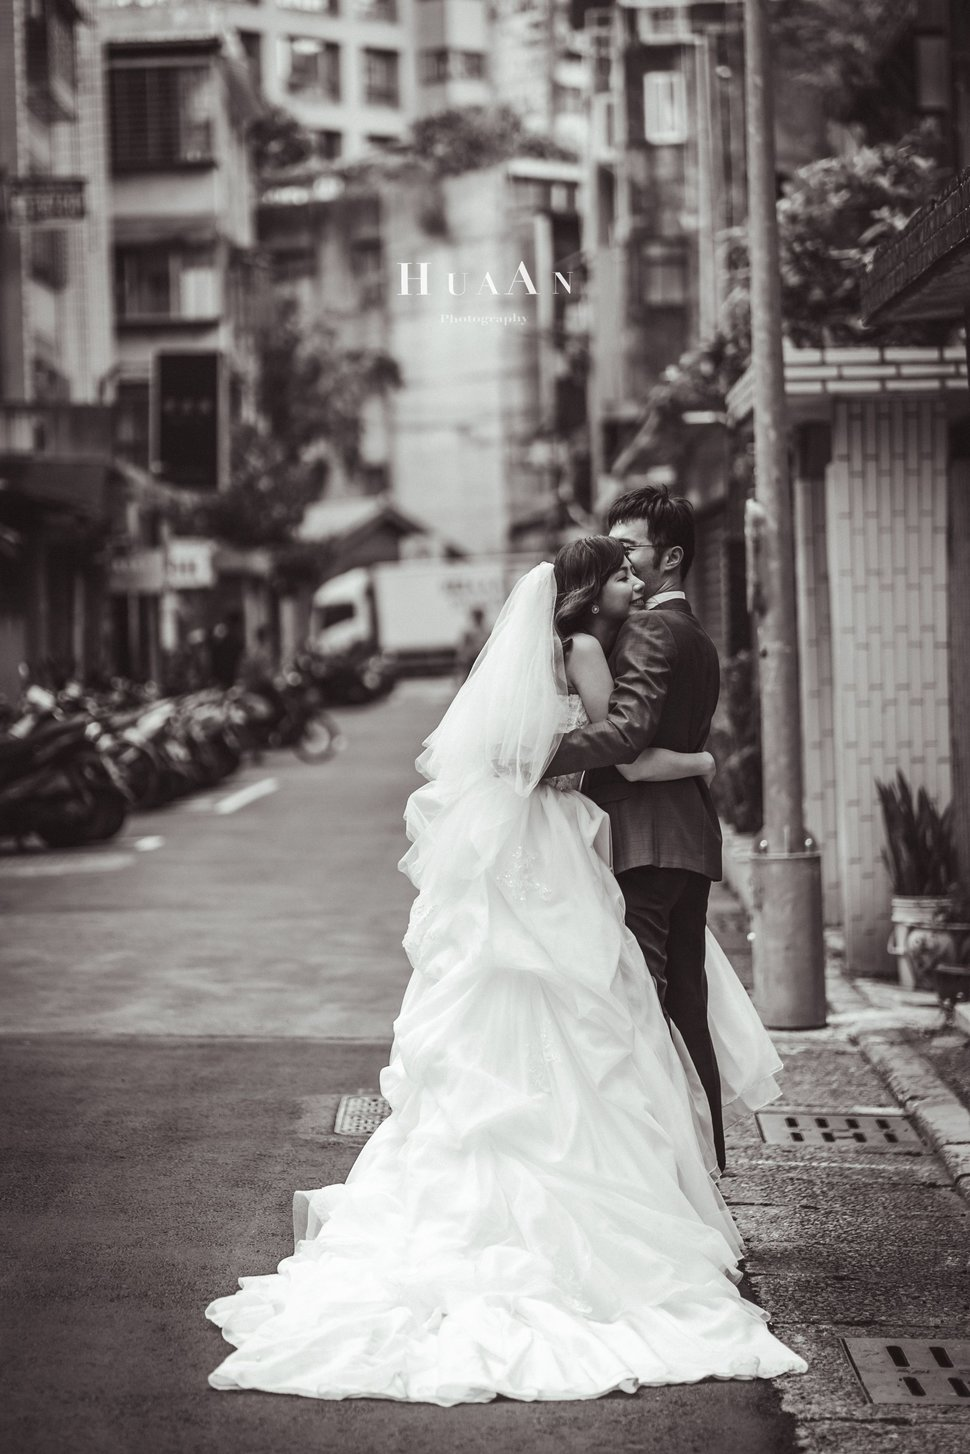 DSC01731 - Huaan Photography《結婚吧》